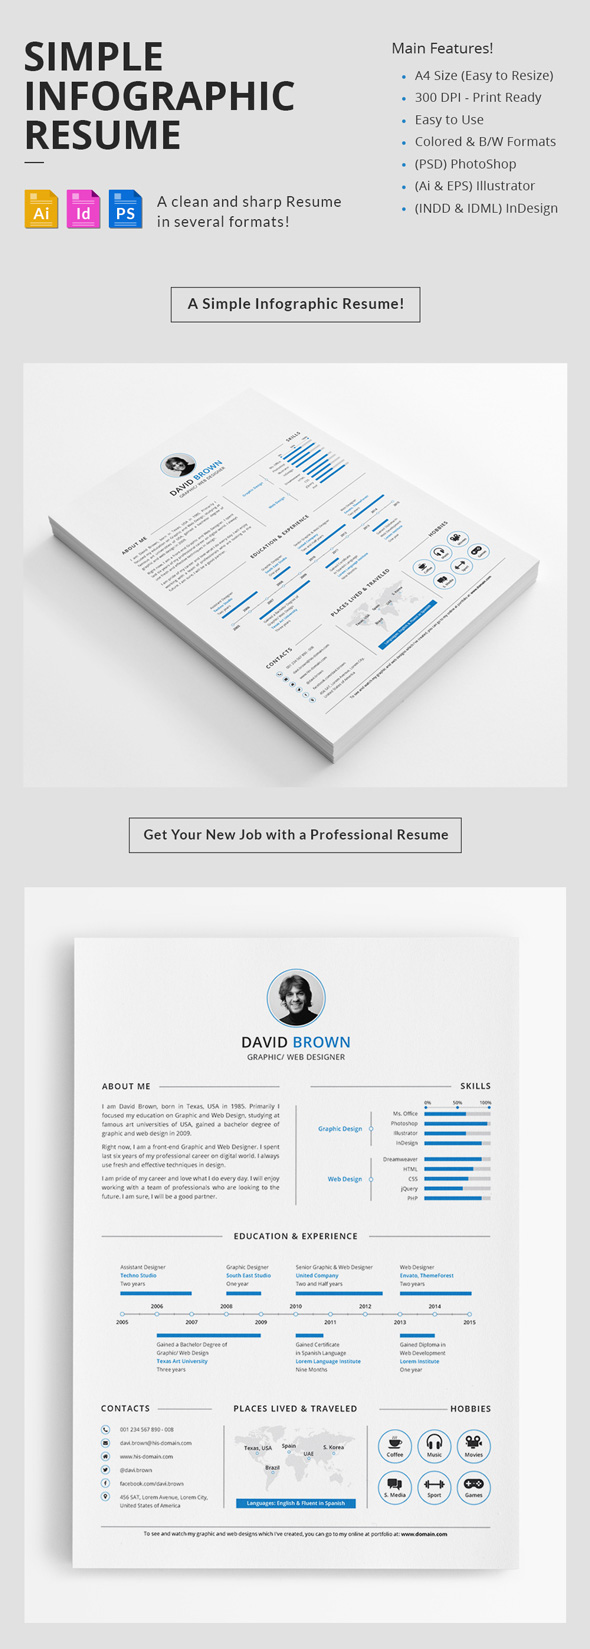 Infographic Resumes minimalist infographic resume template Simple Infographic Resume Design